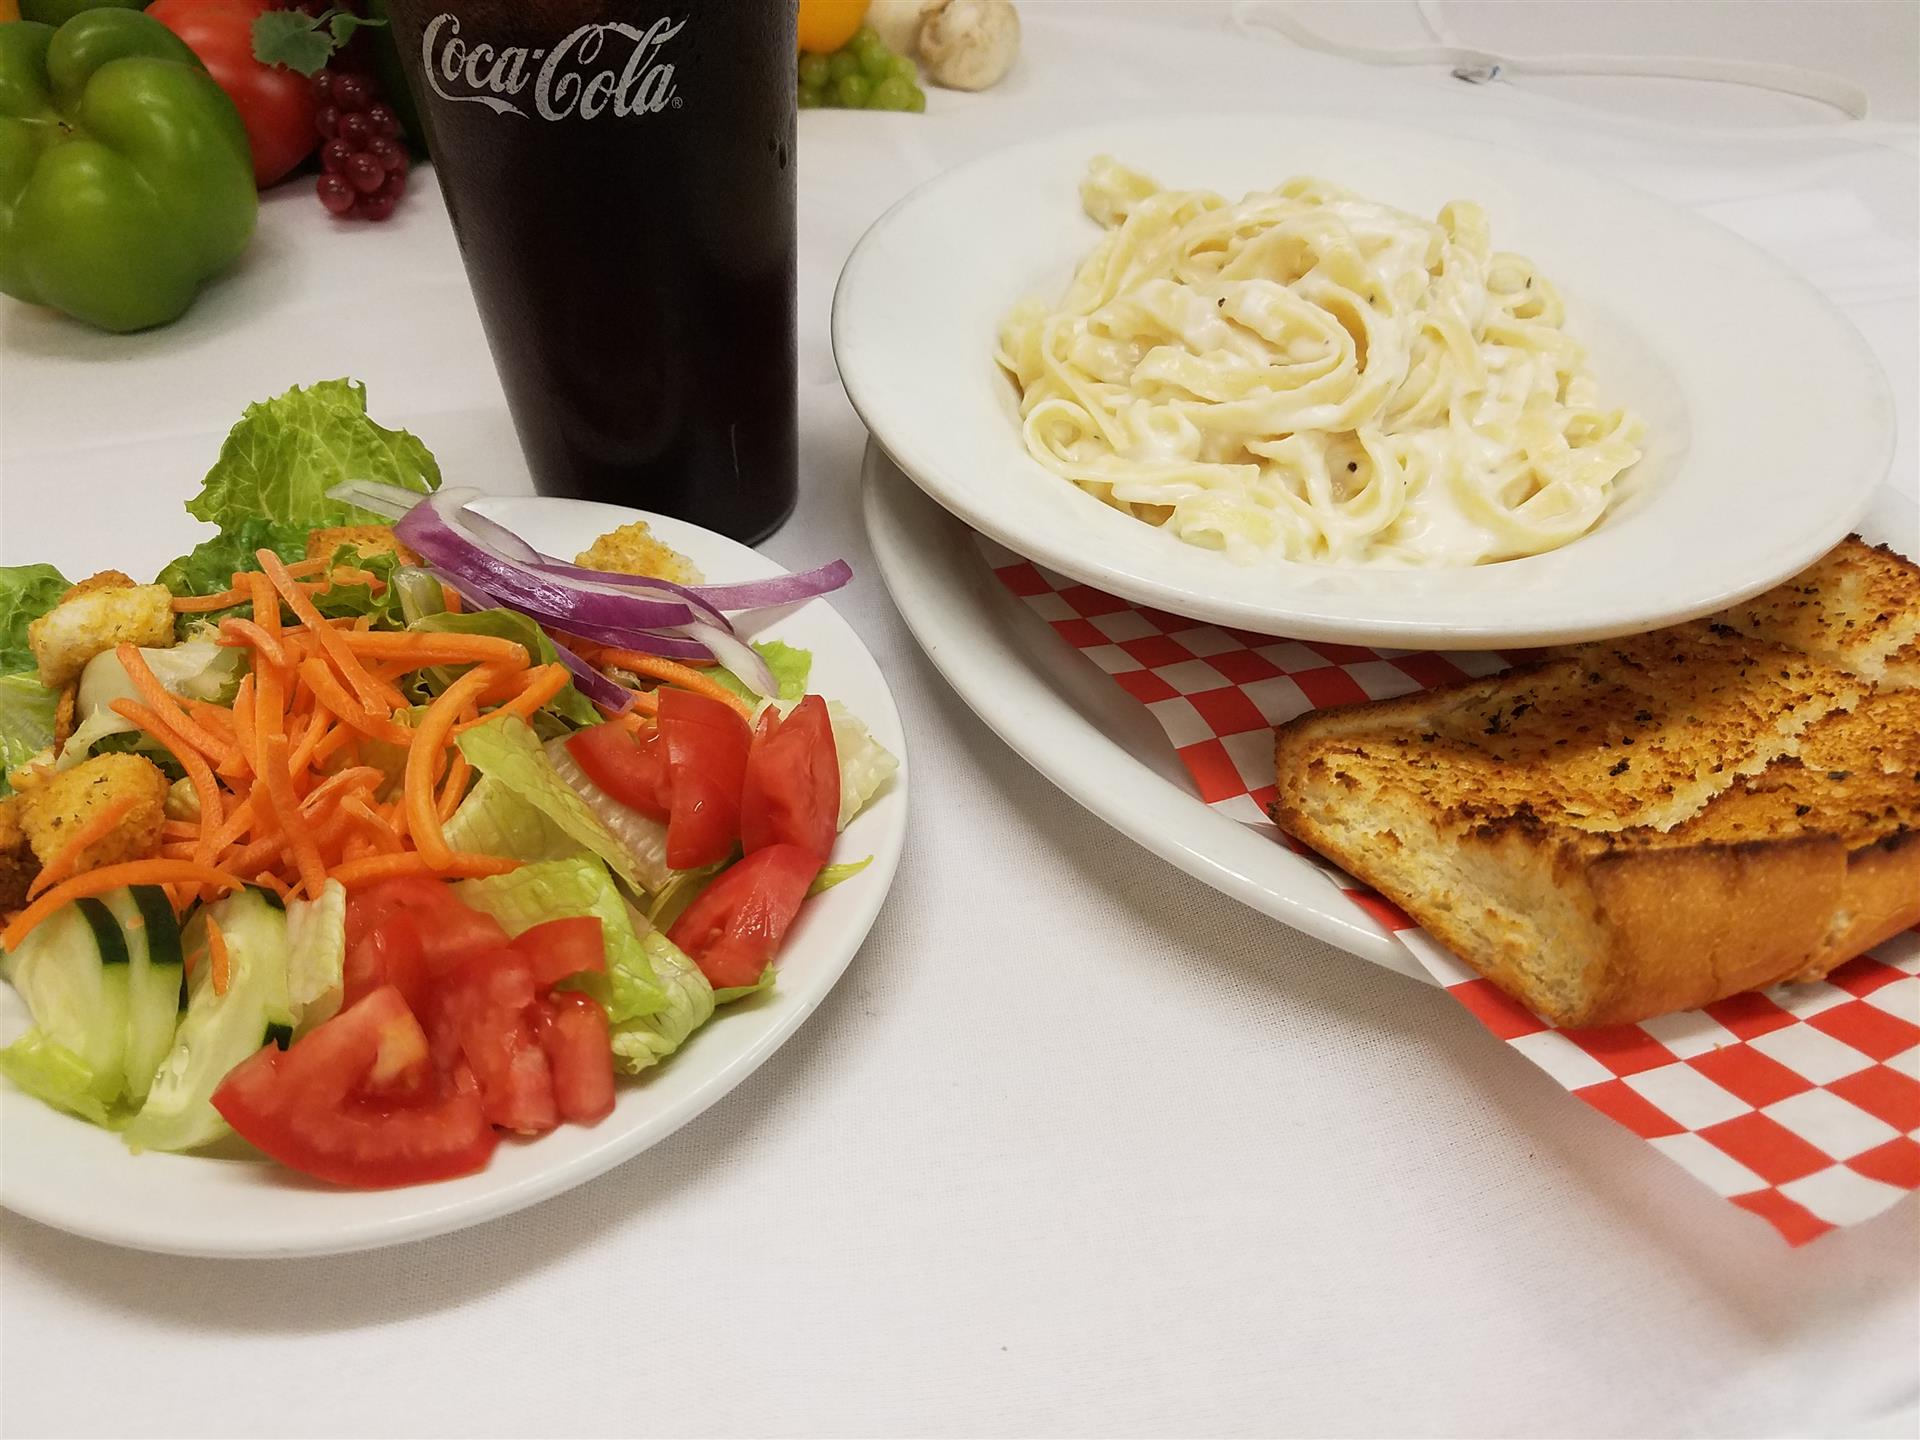 linguine alfredo with garlic bread and a house salad with a soda